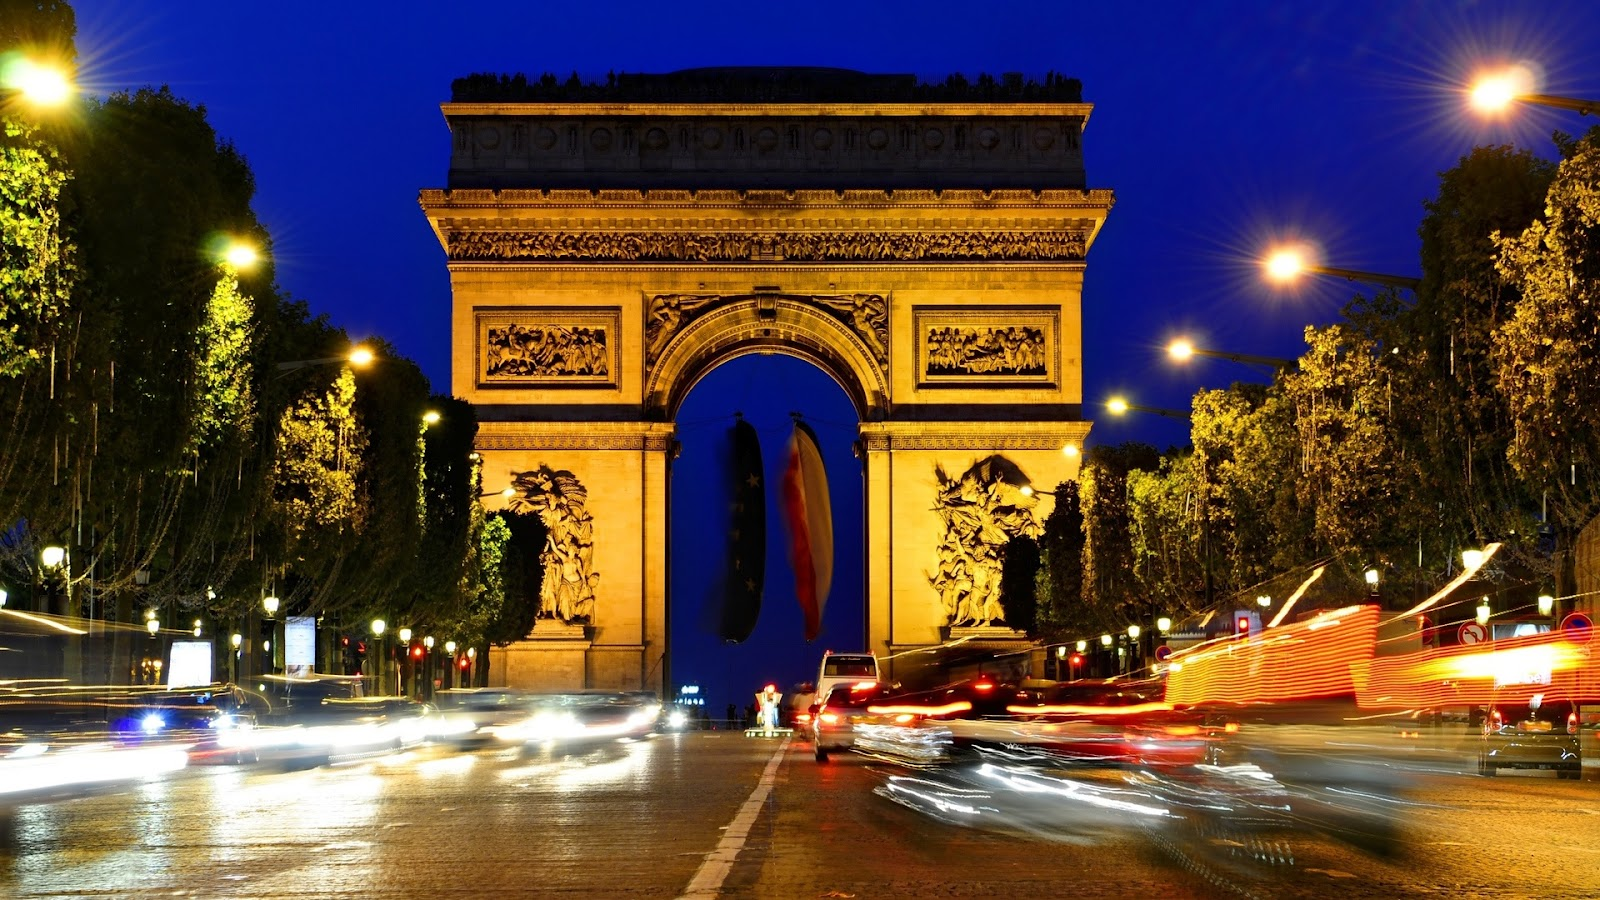 http://4.bp.blogspot.com/-zH8MgCqQnXI/UBDWJuVtkZI/AAAAAAAAD7k/XOirqOKl-Cs/s1600/Paris-Wallpaper-Arc-de-Triomphe-France-night-1920x1080.jpg